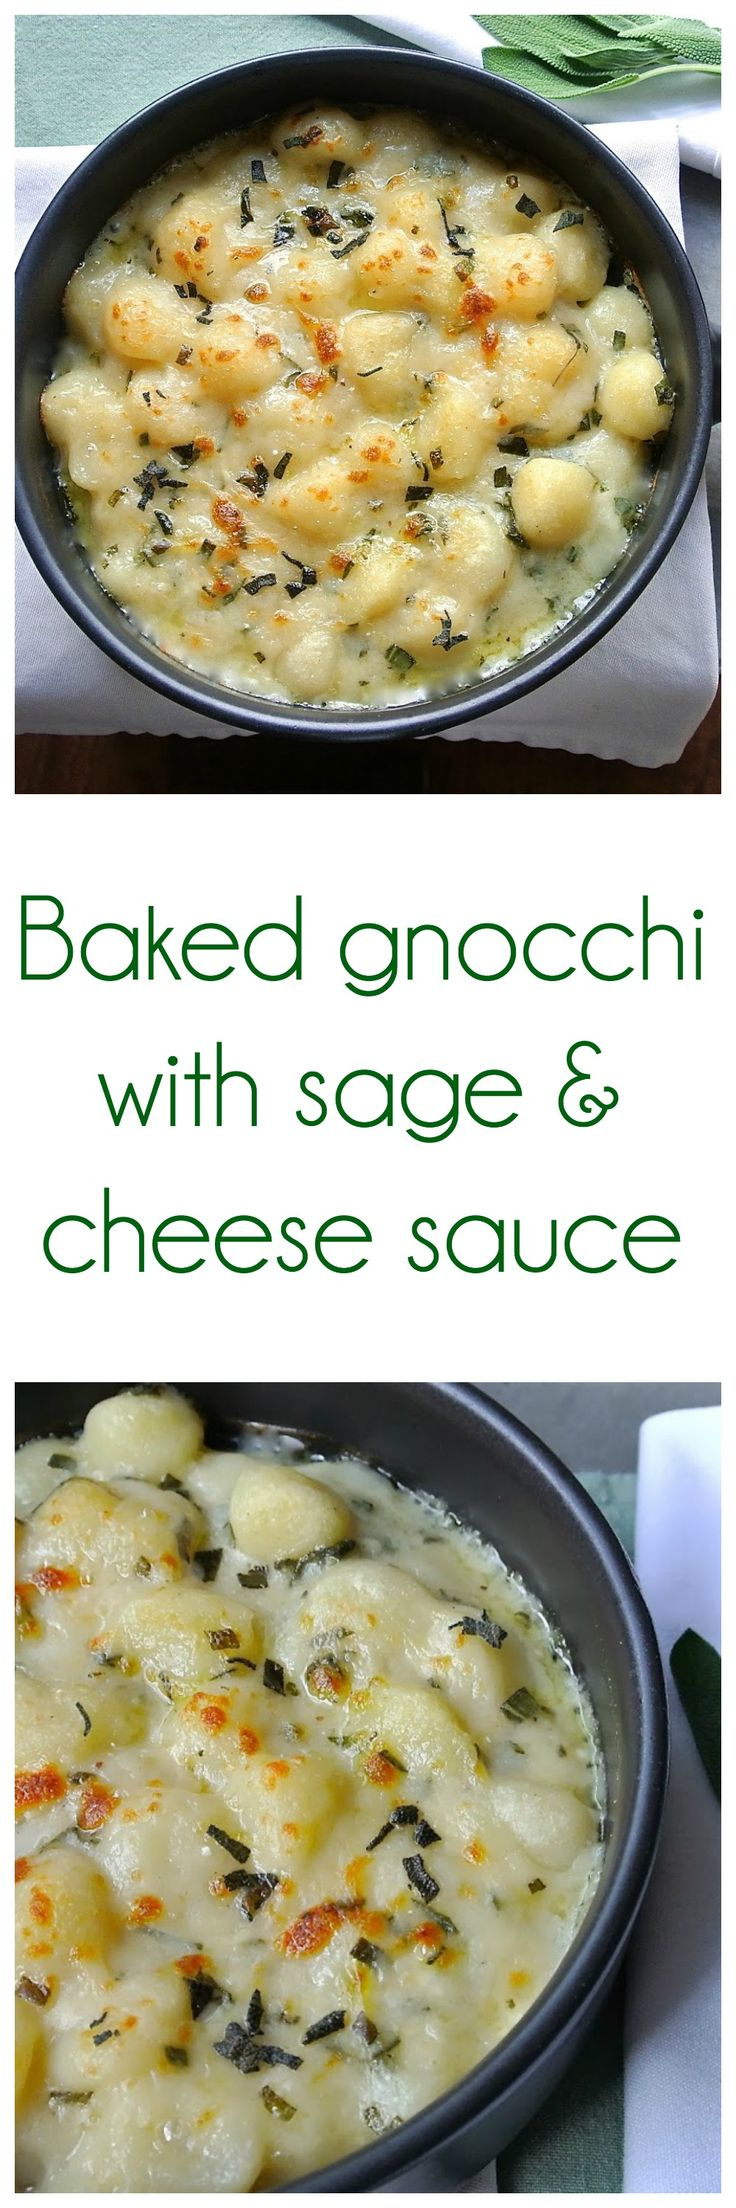 66 best Dinner images on Pinterest | Suppers, Drink and Cooking recipes